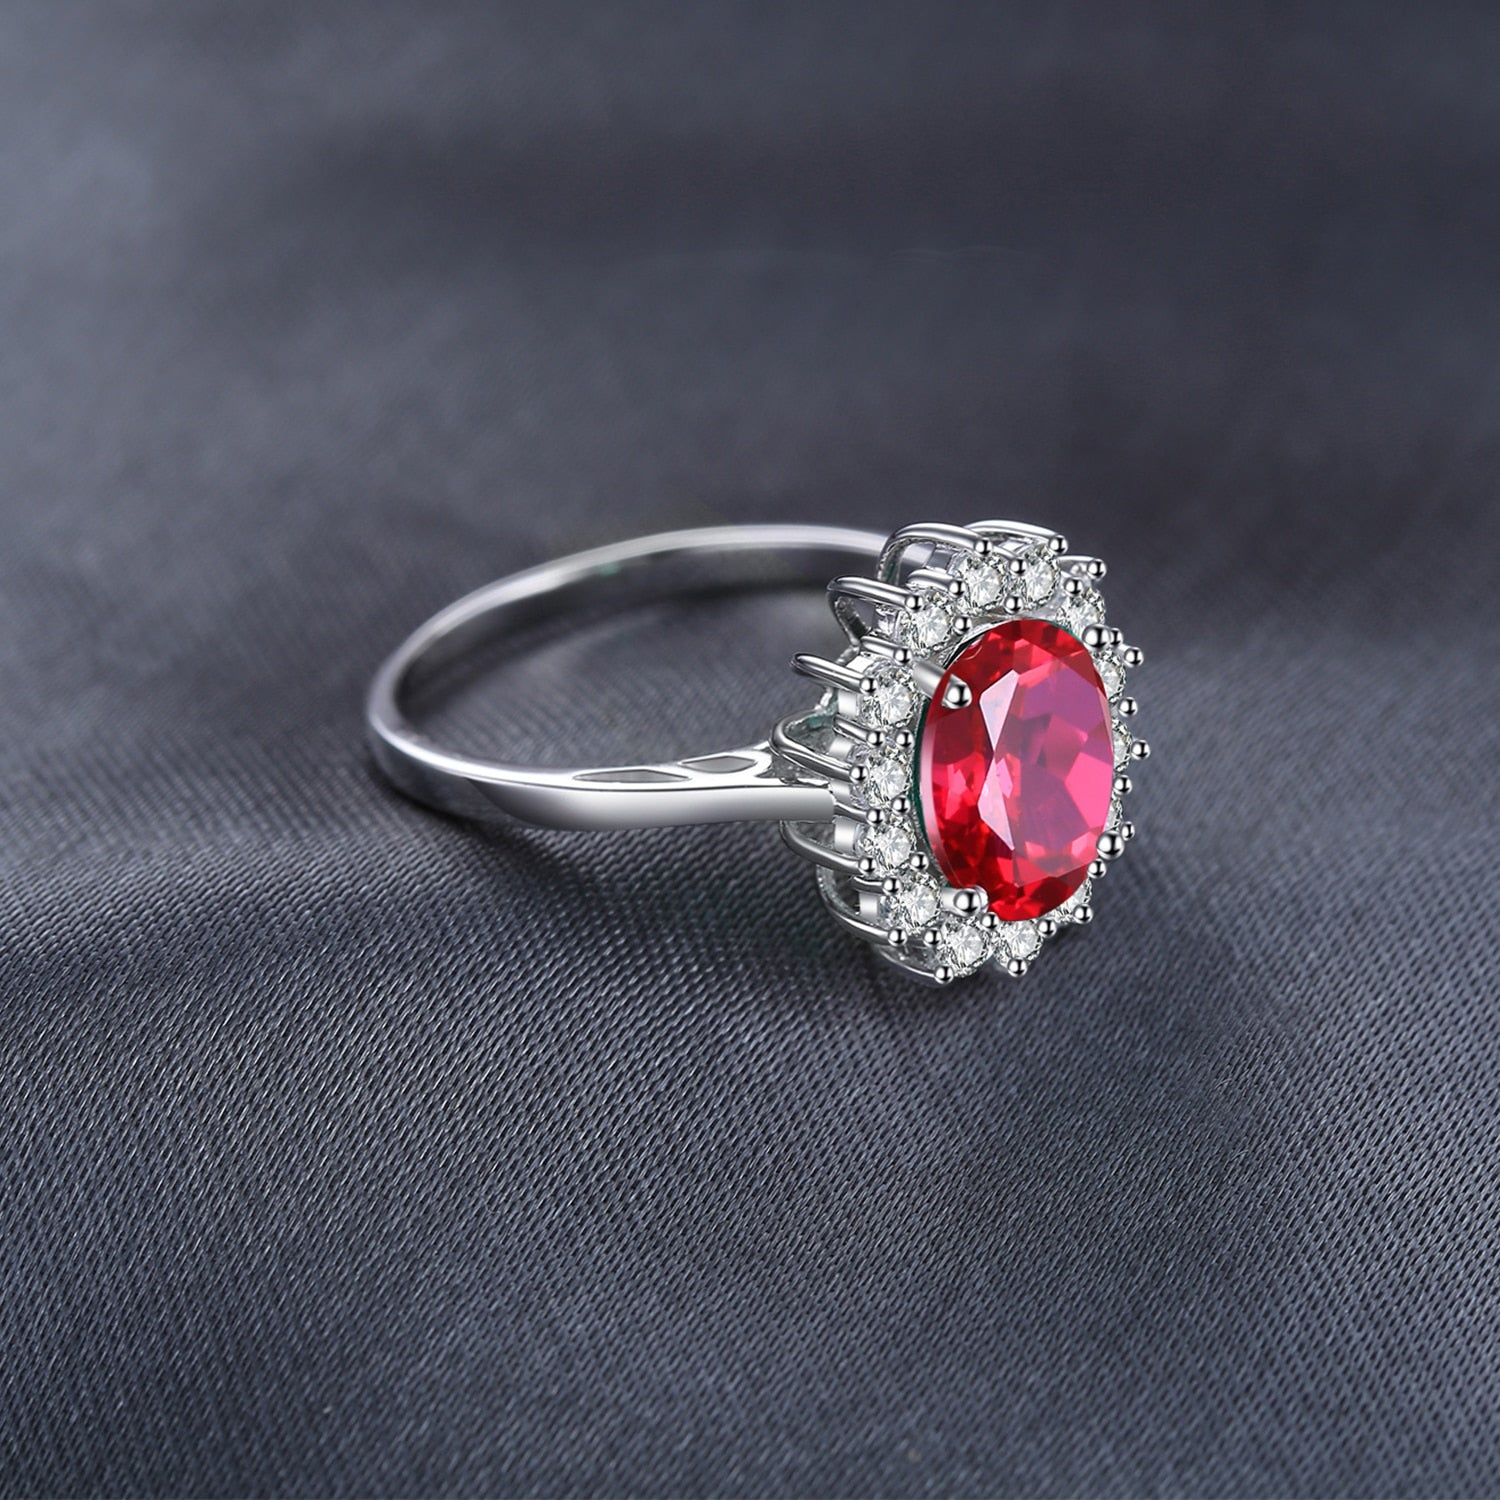 Princess Diana Red Ruby Ring Engagement Ring - RHEA LIGHT